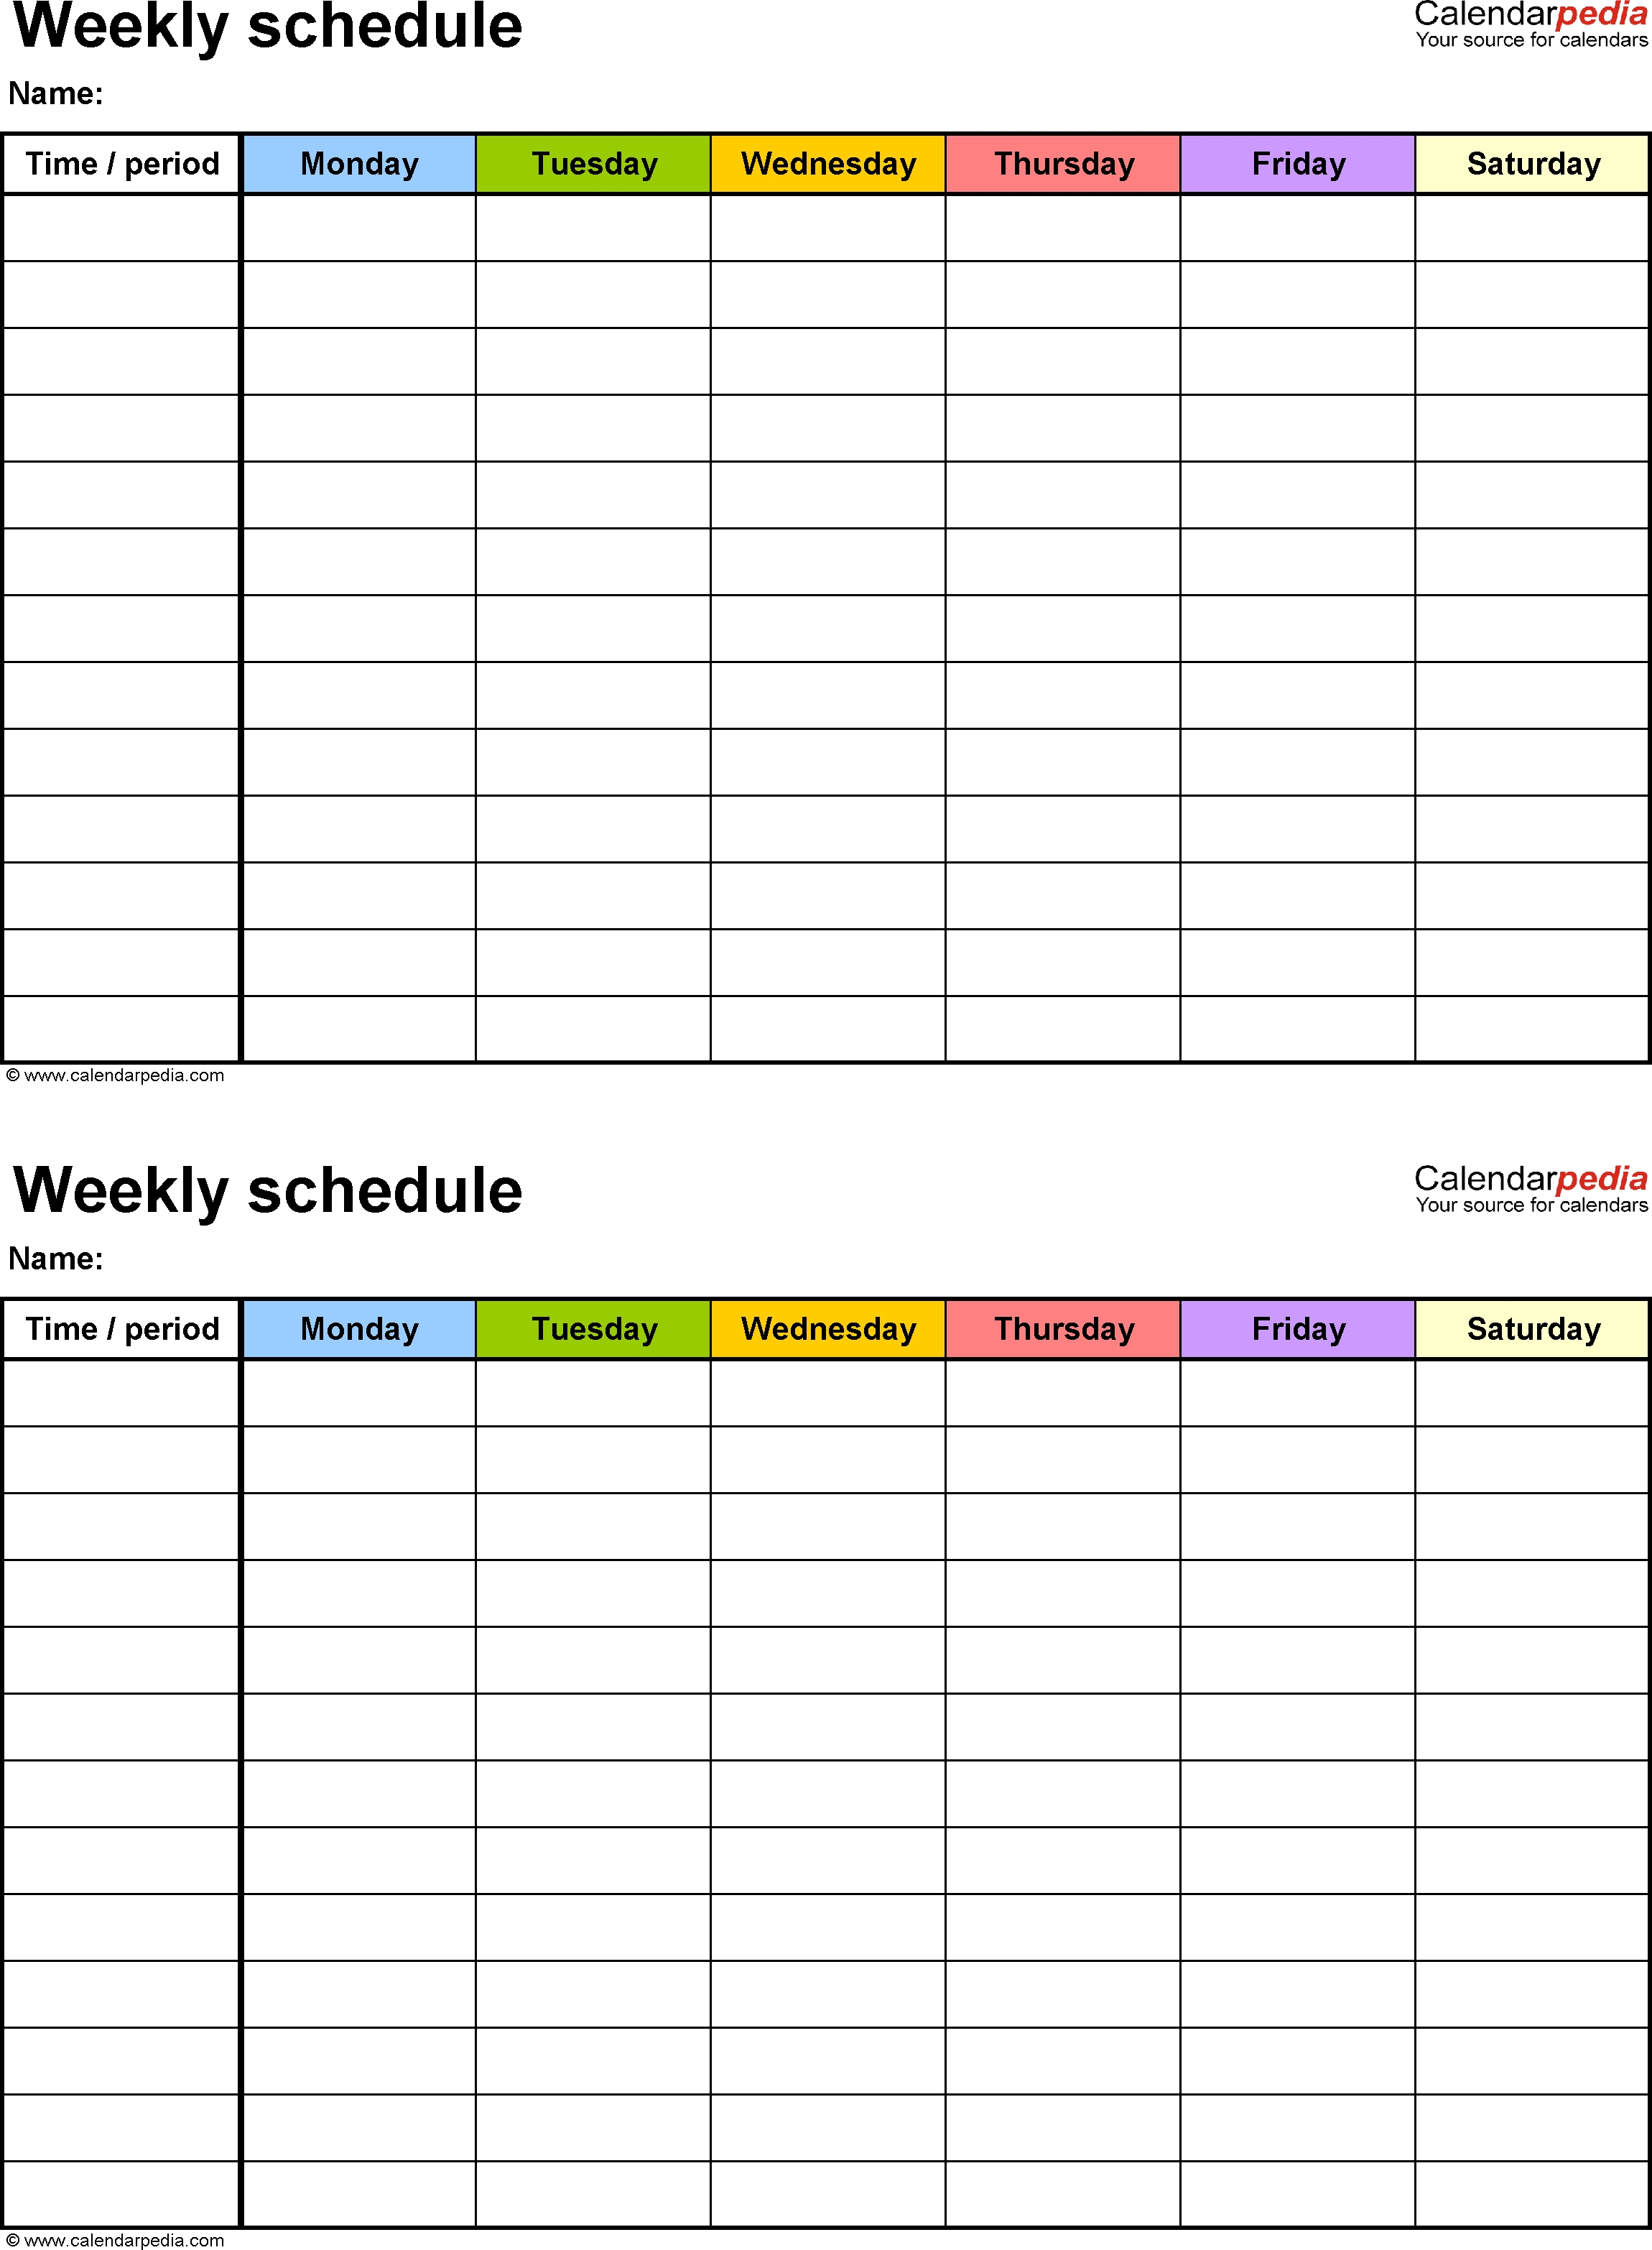 Free Weekly Schedule Templates For Word - 18 Templates with regard to 7 Day Weekly Calendar Printable